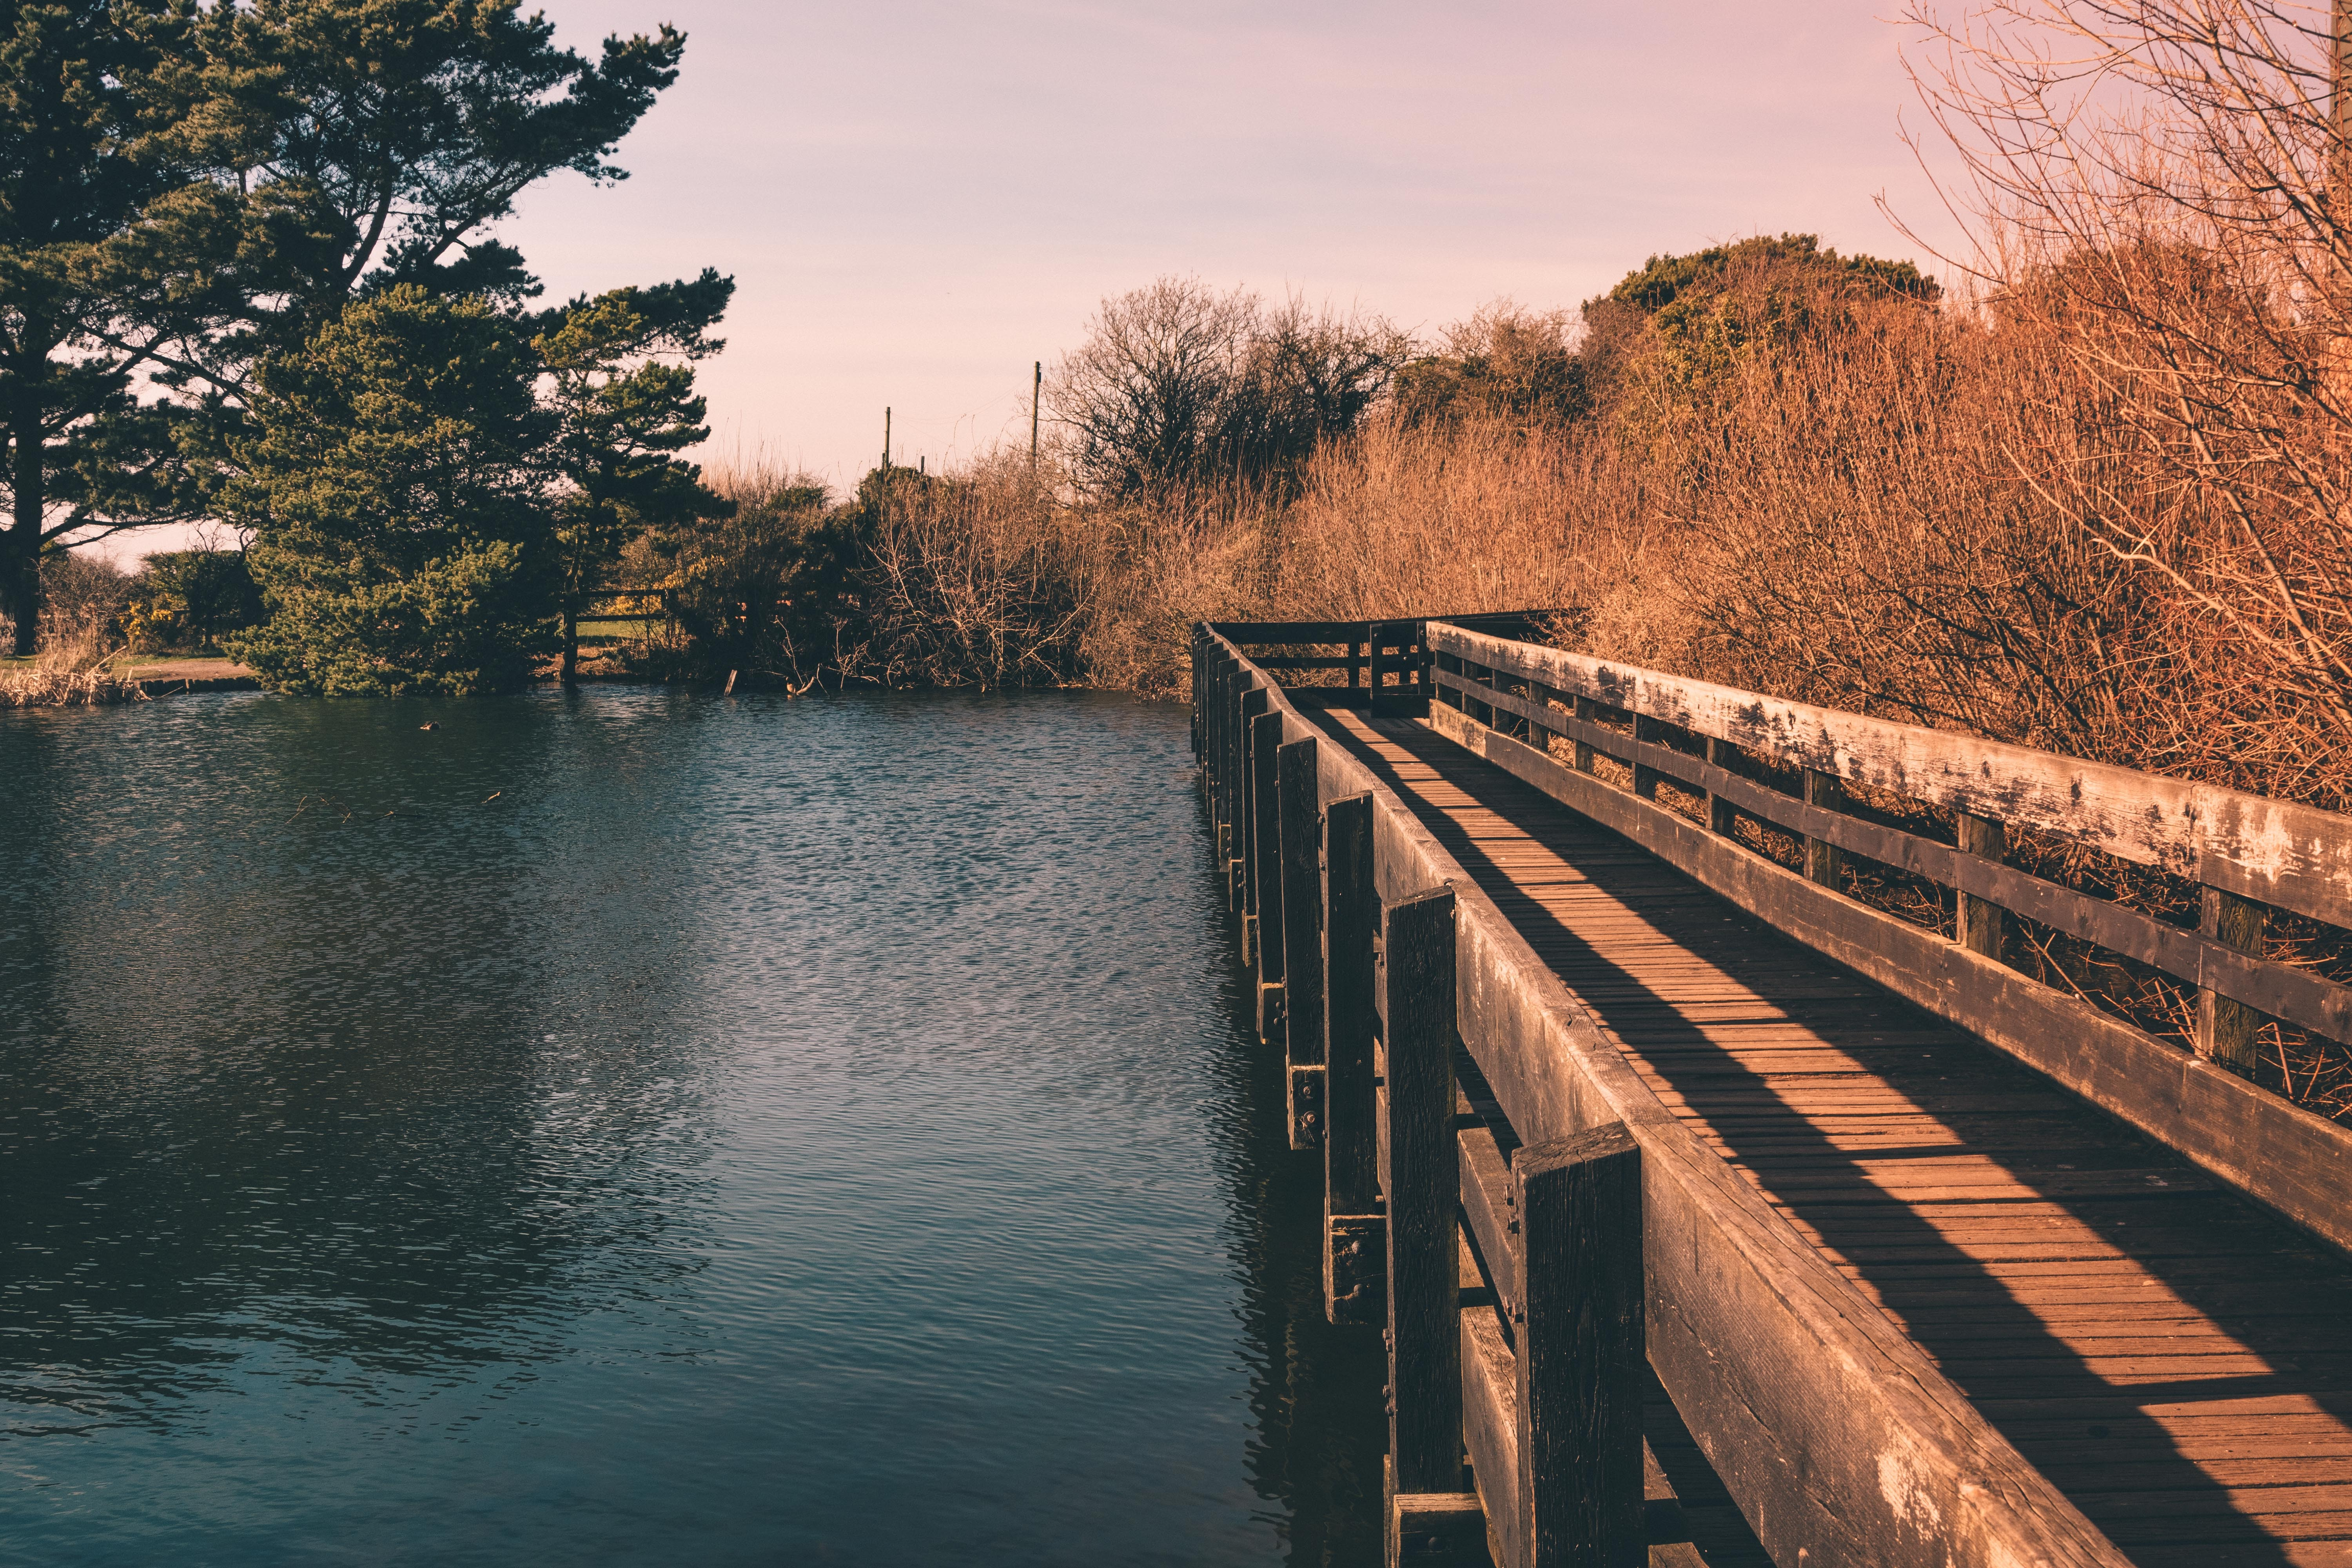 wooden dock over body of water near trees